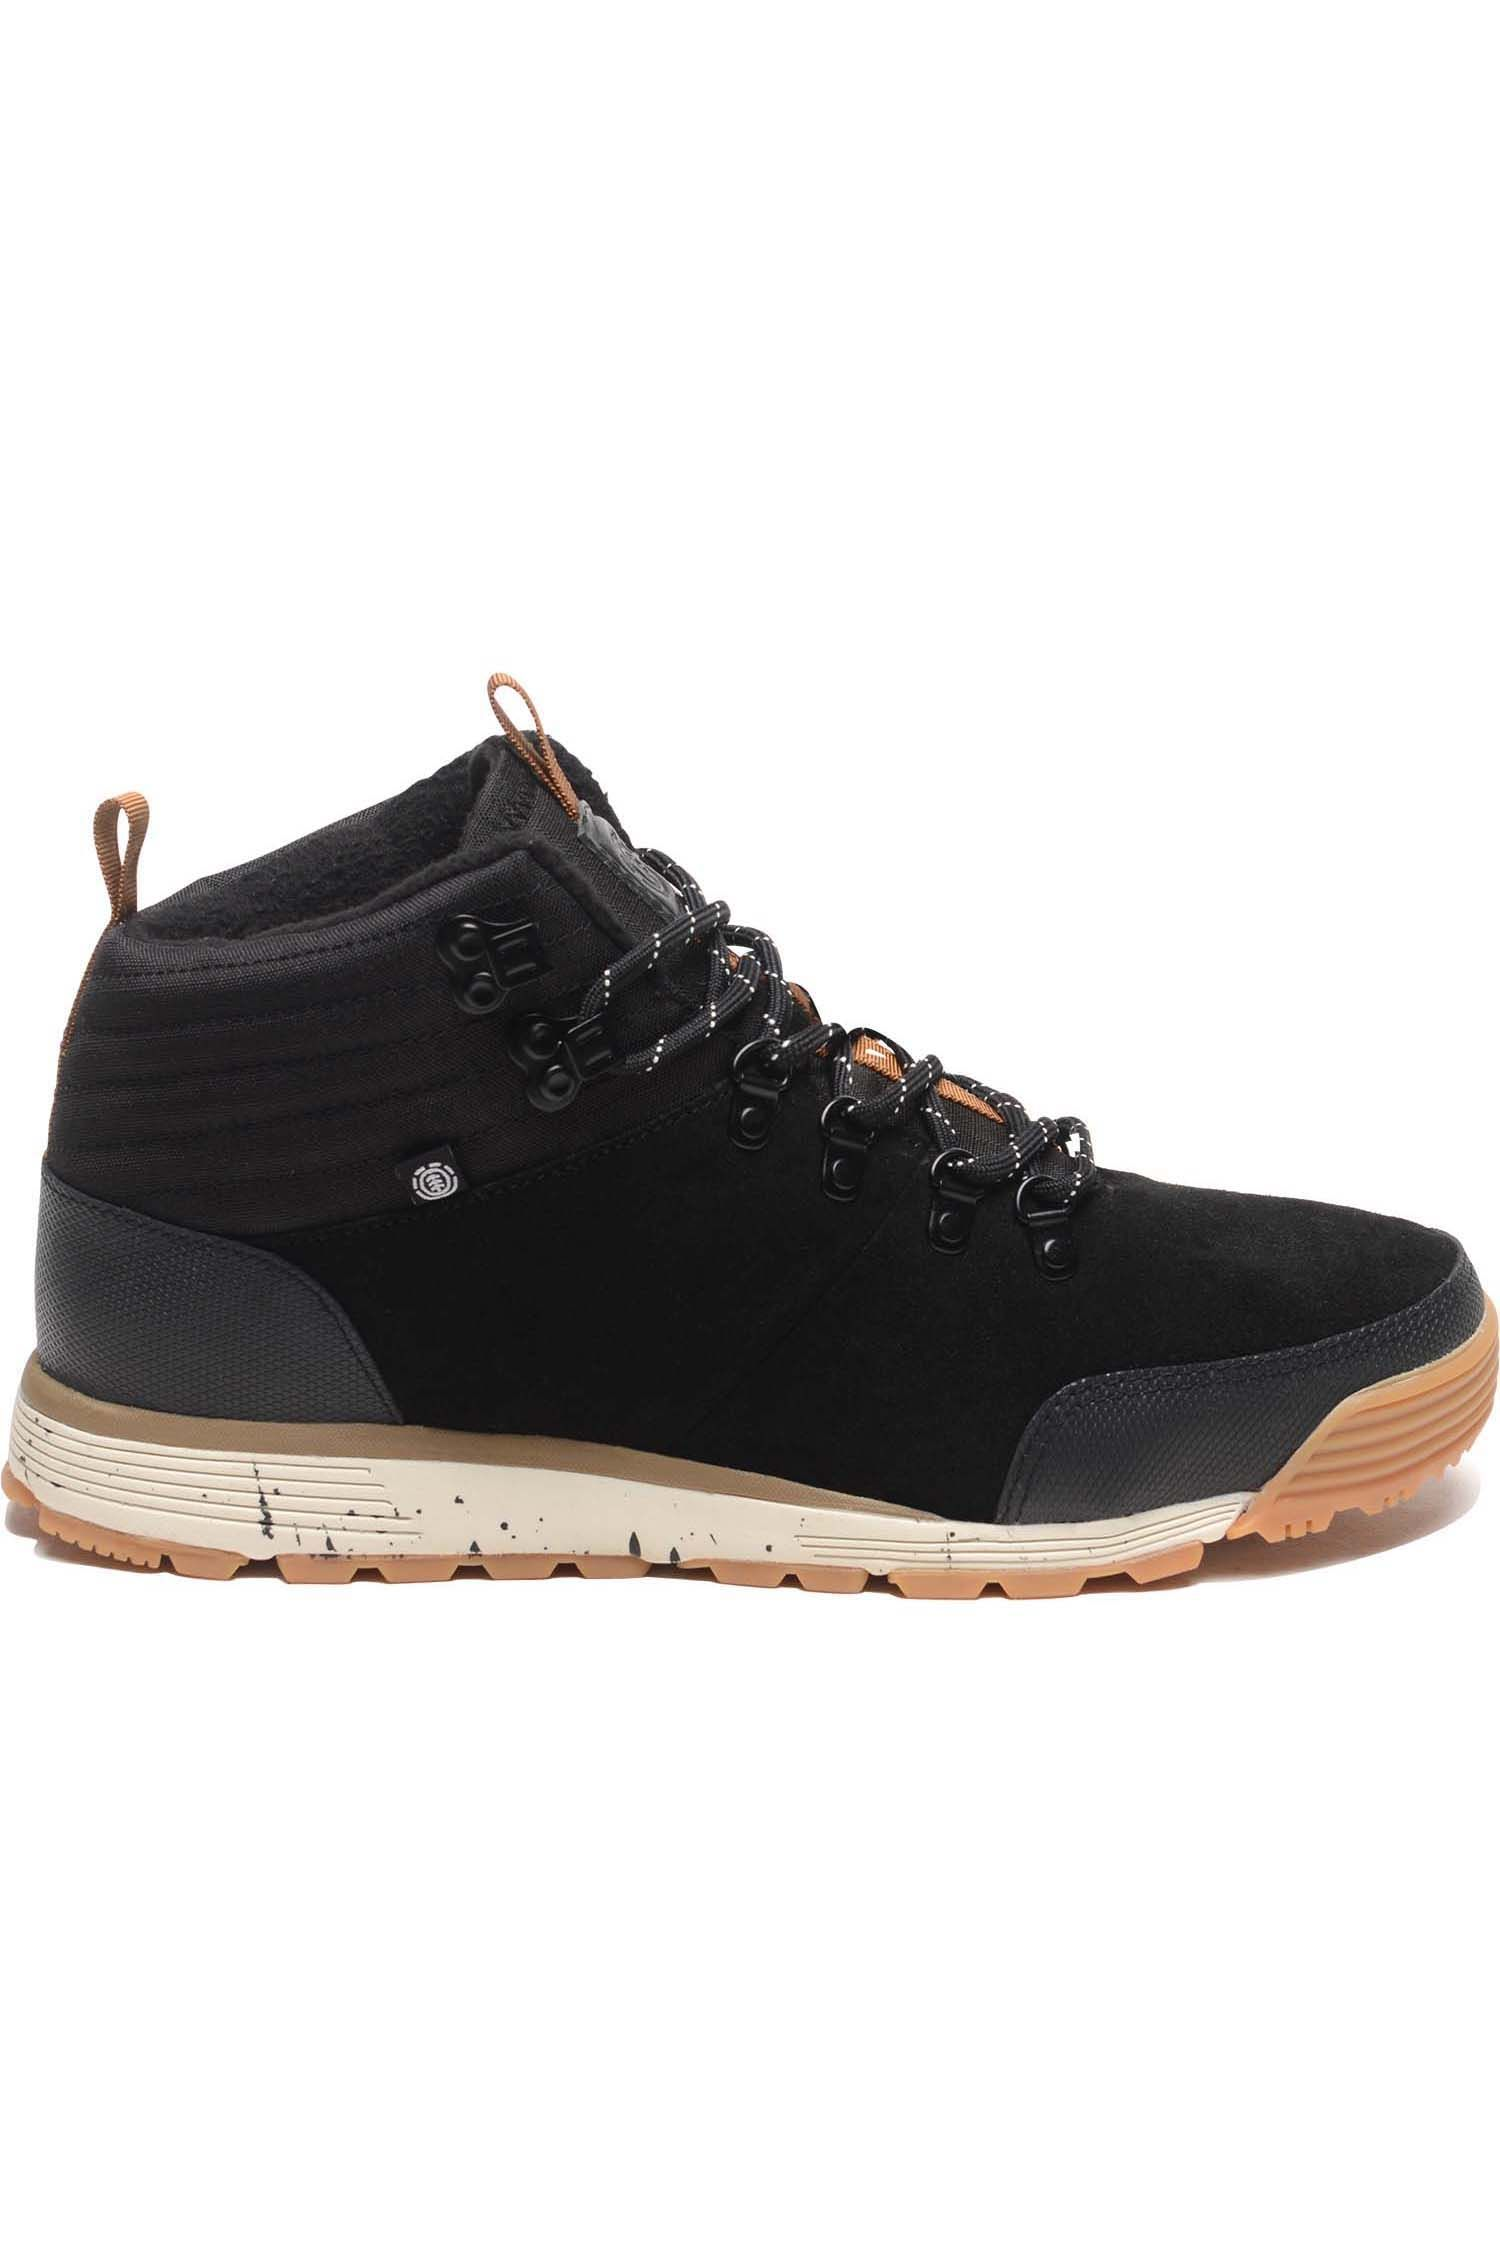 Tenis Element DONNELLY LIGHT WOLFEBORO Black Gum